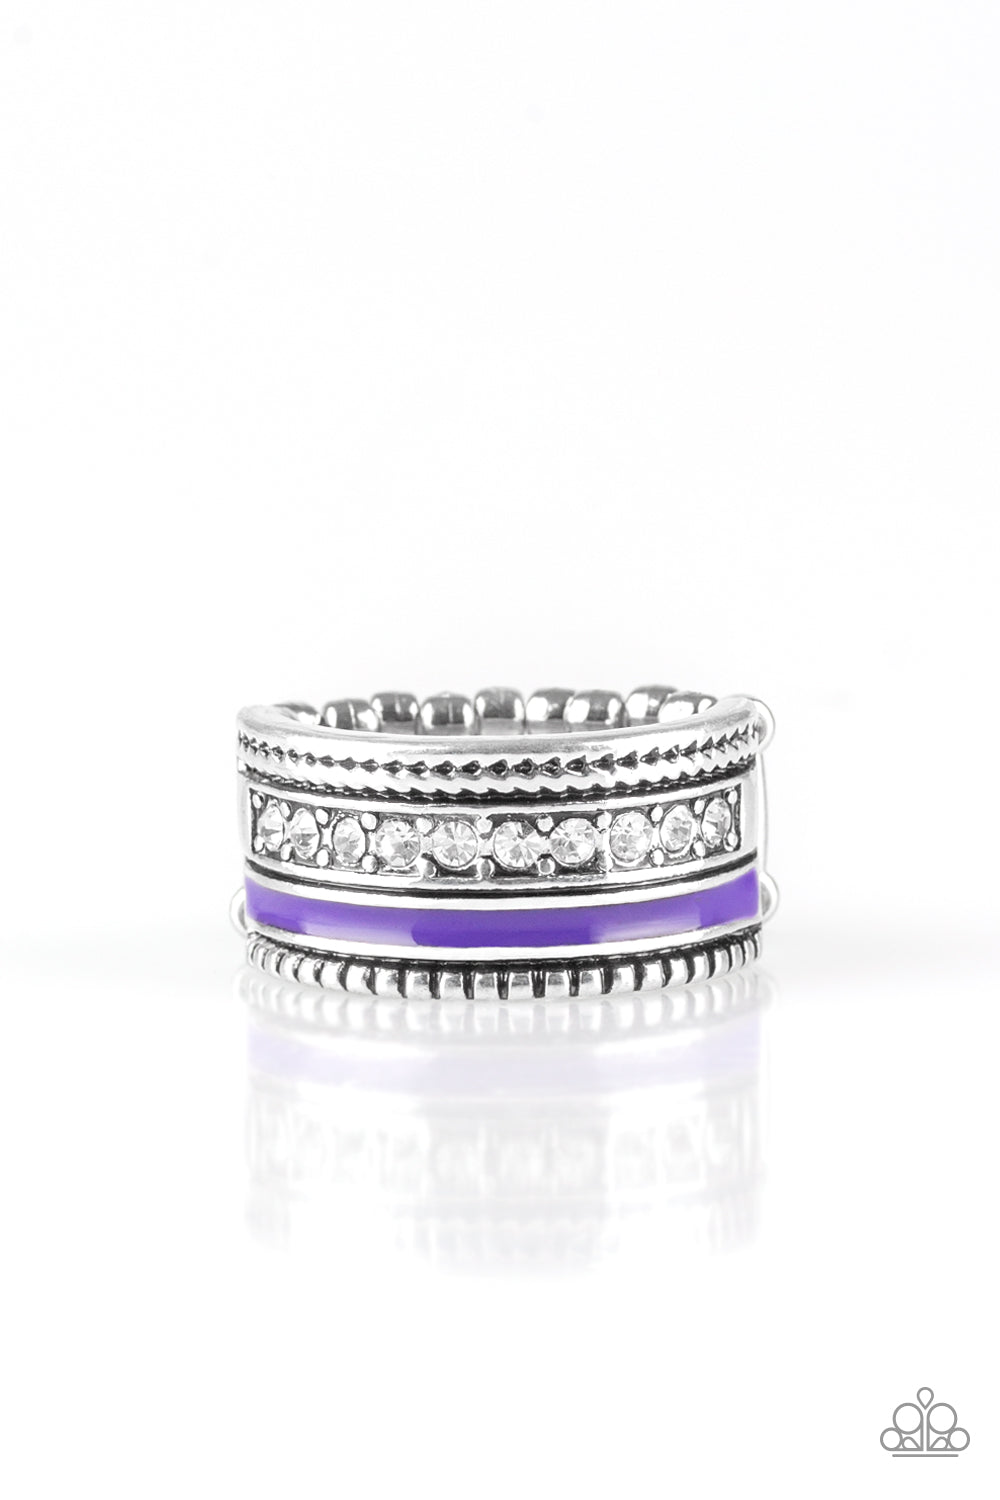 Paparazzi Accessories - Rich Rogue - Purple Ring